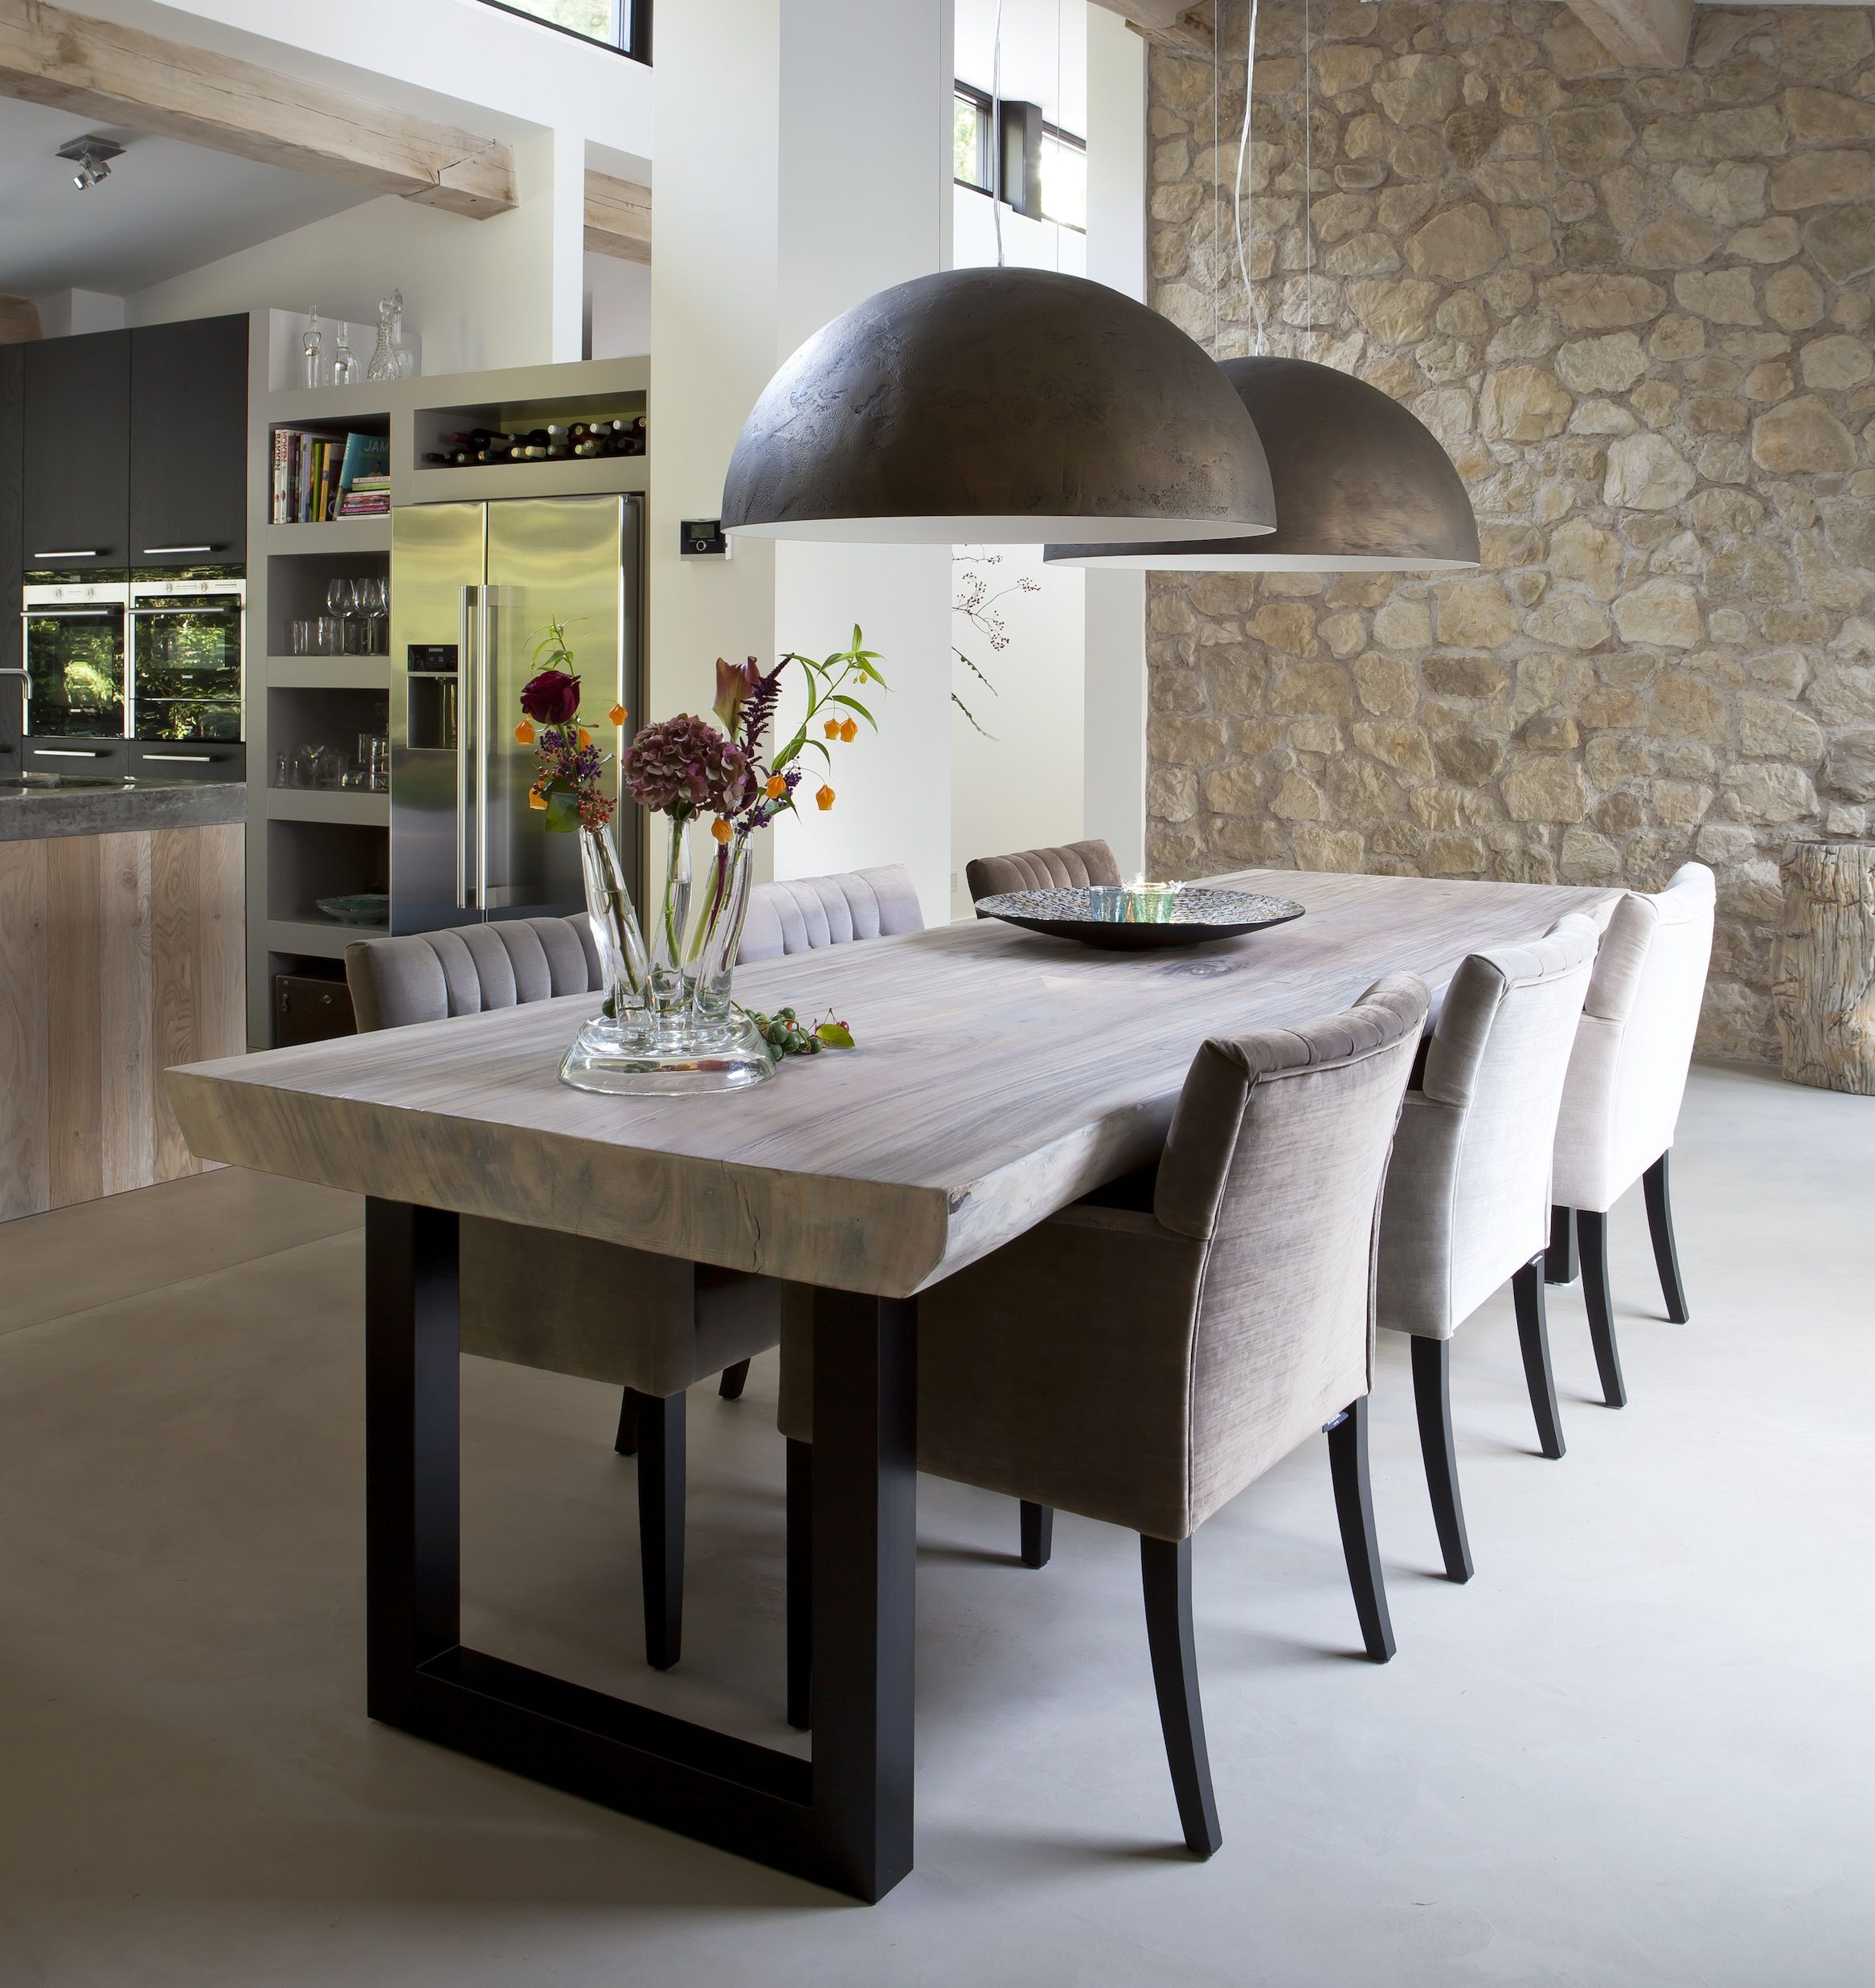 Furniture For The Kitchen I Like The Kitchen With This Dining Place Open Spaces Carien